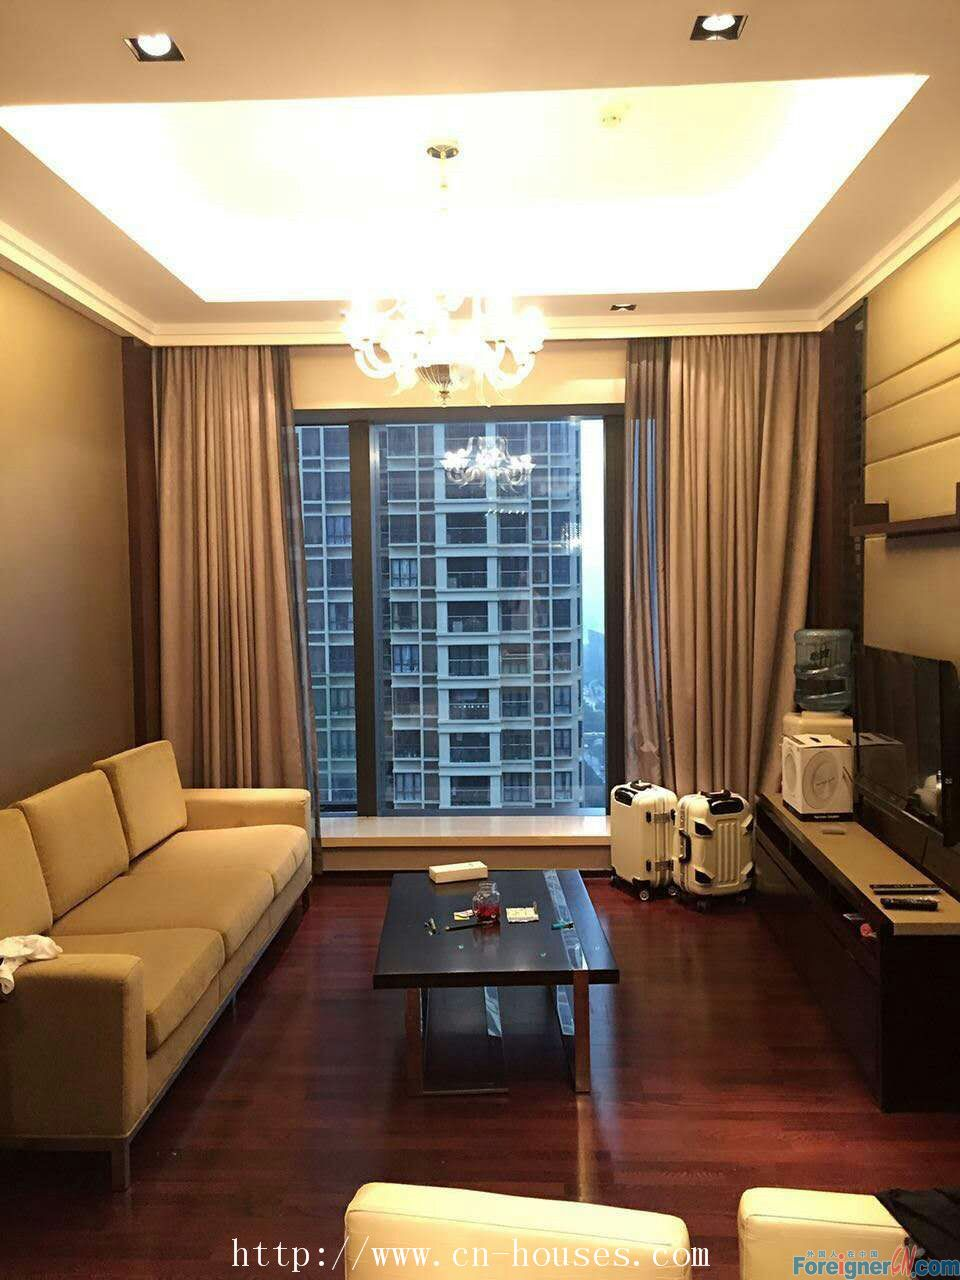 modern single room,six stars hotel in Guangzhou,to the Liede metro station takes only 5-10 minutes on foot.